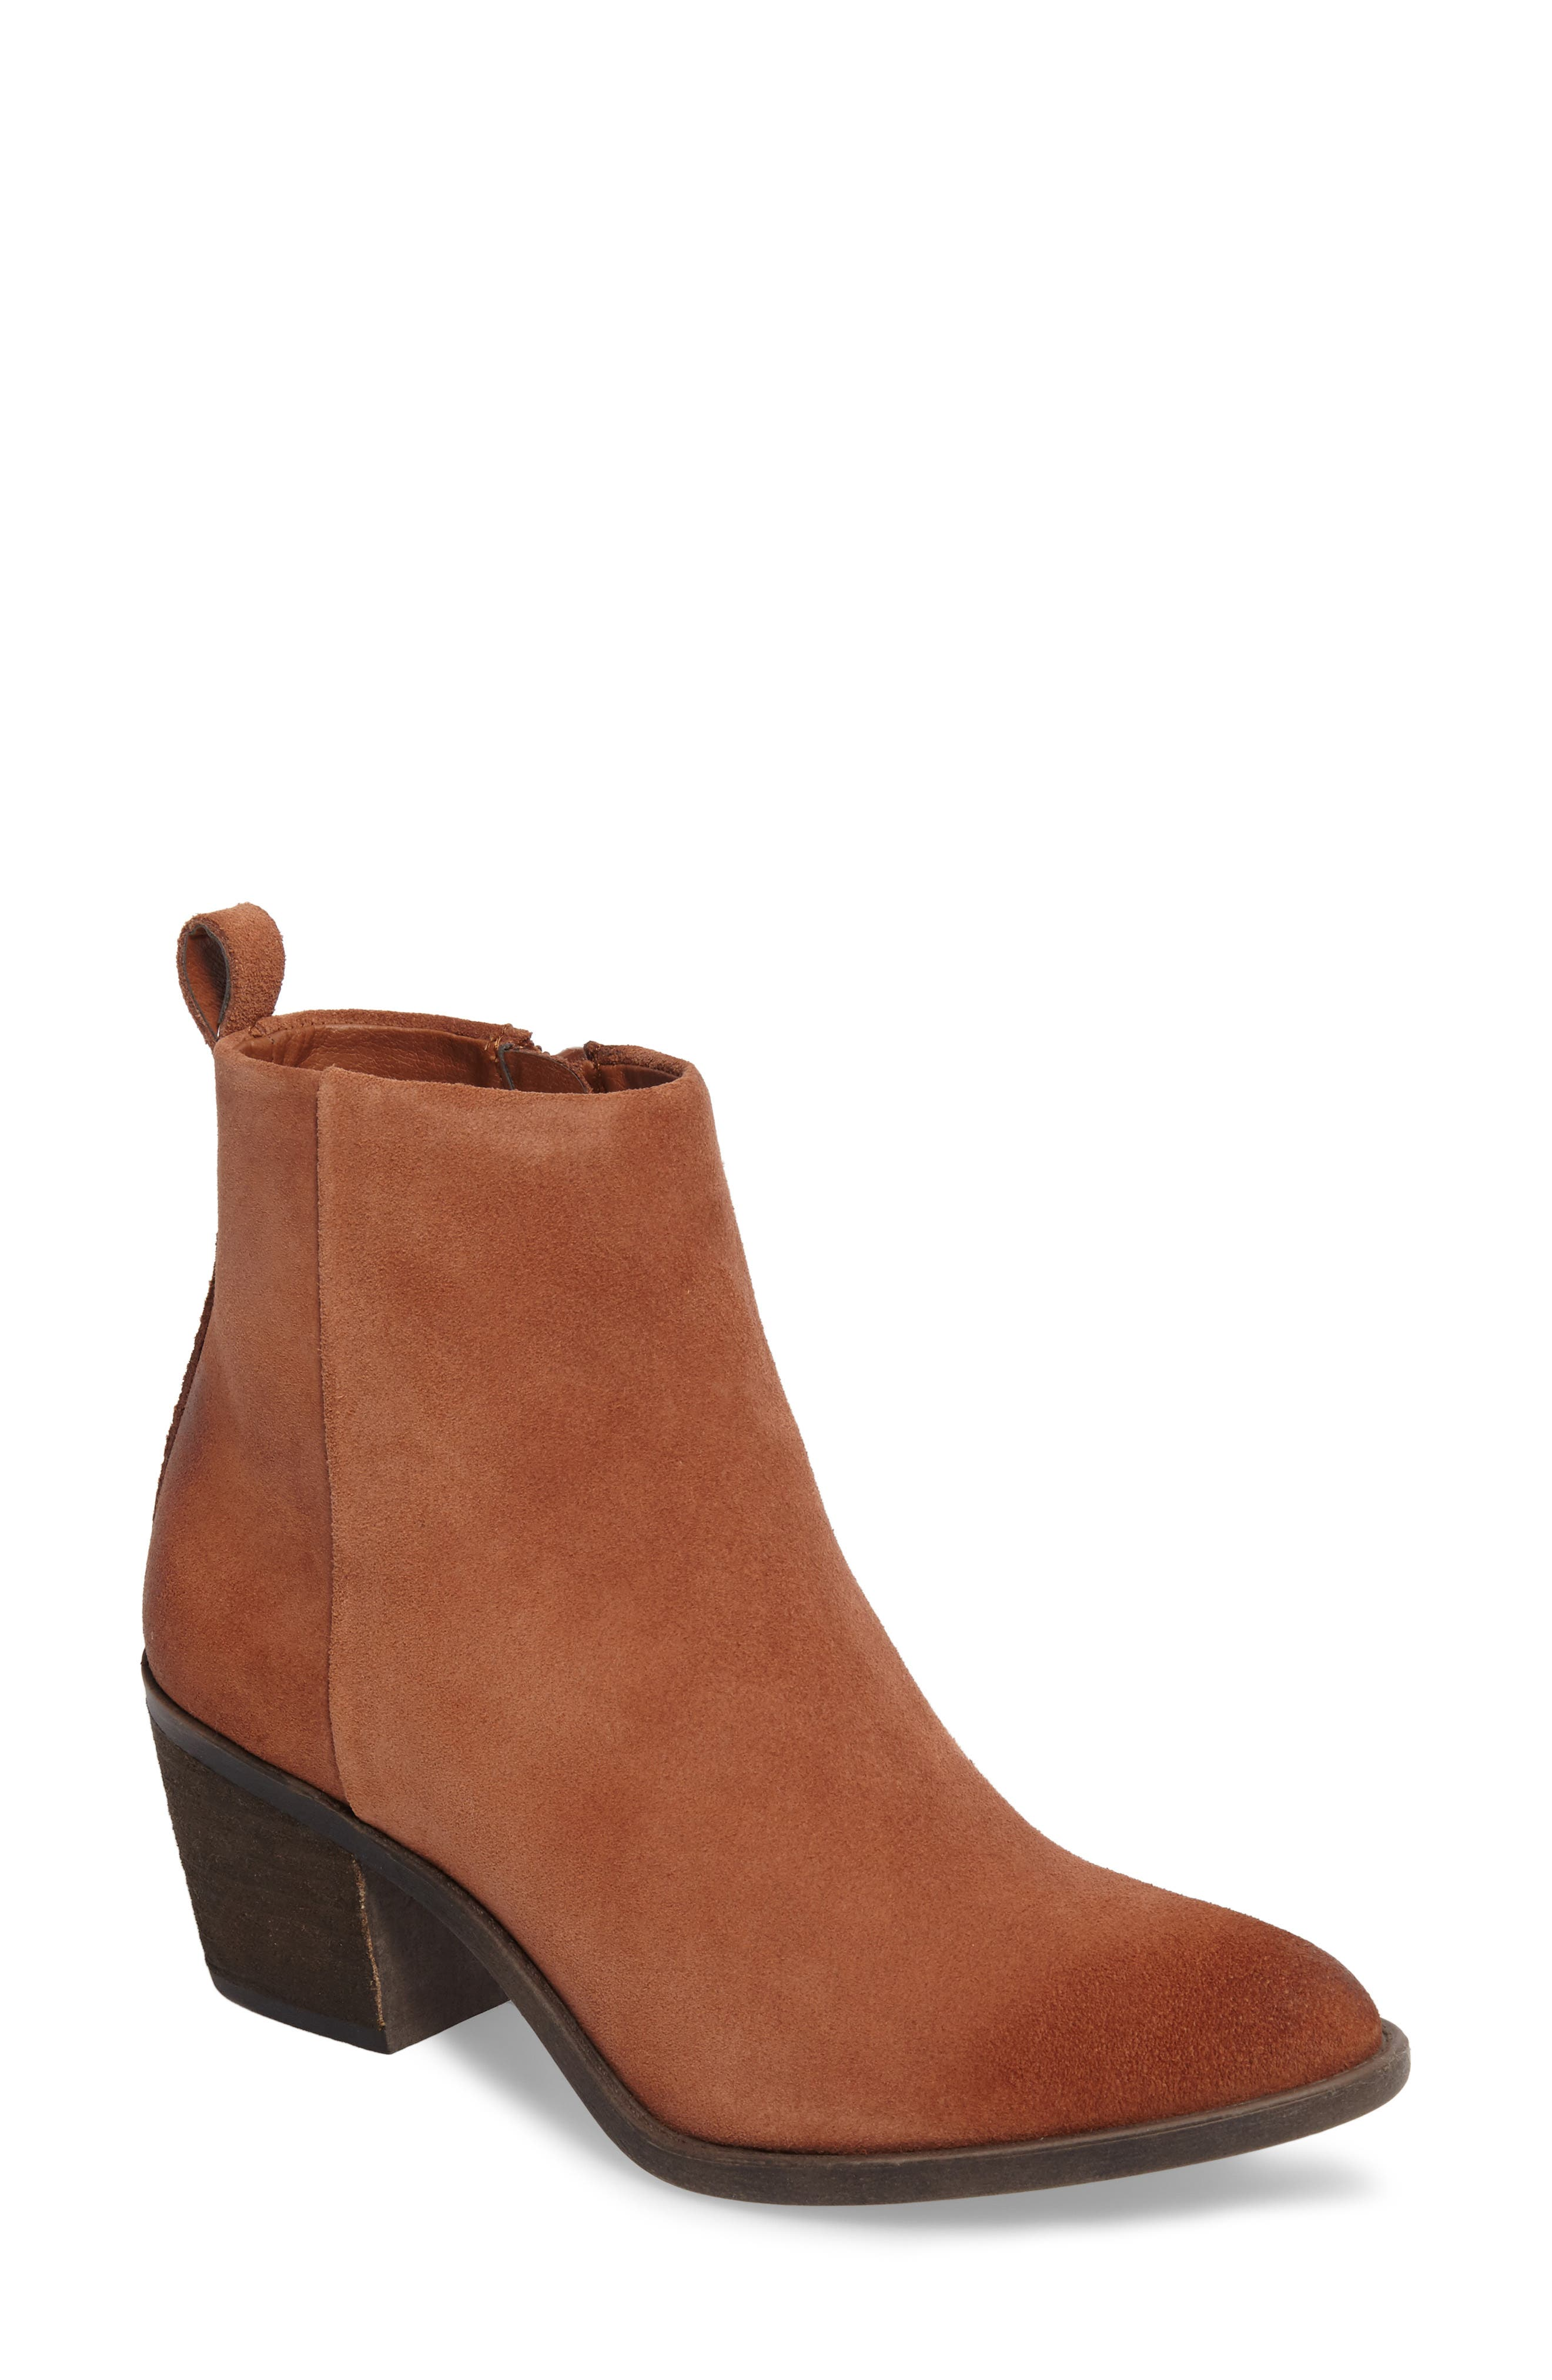 Natania Bootie,                             Main thumbnail 1, color,                             Toffee Suede